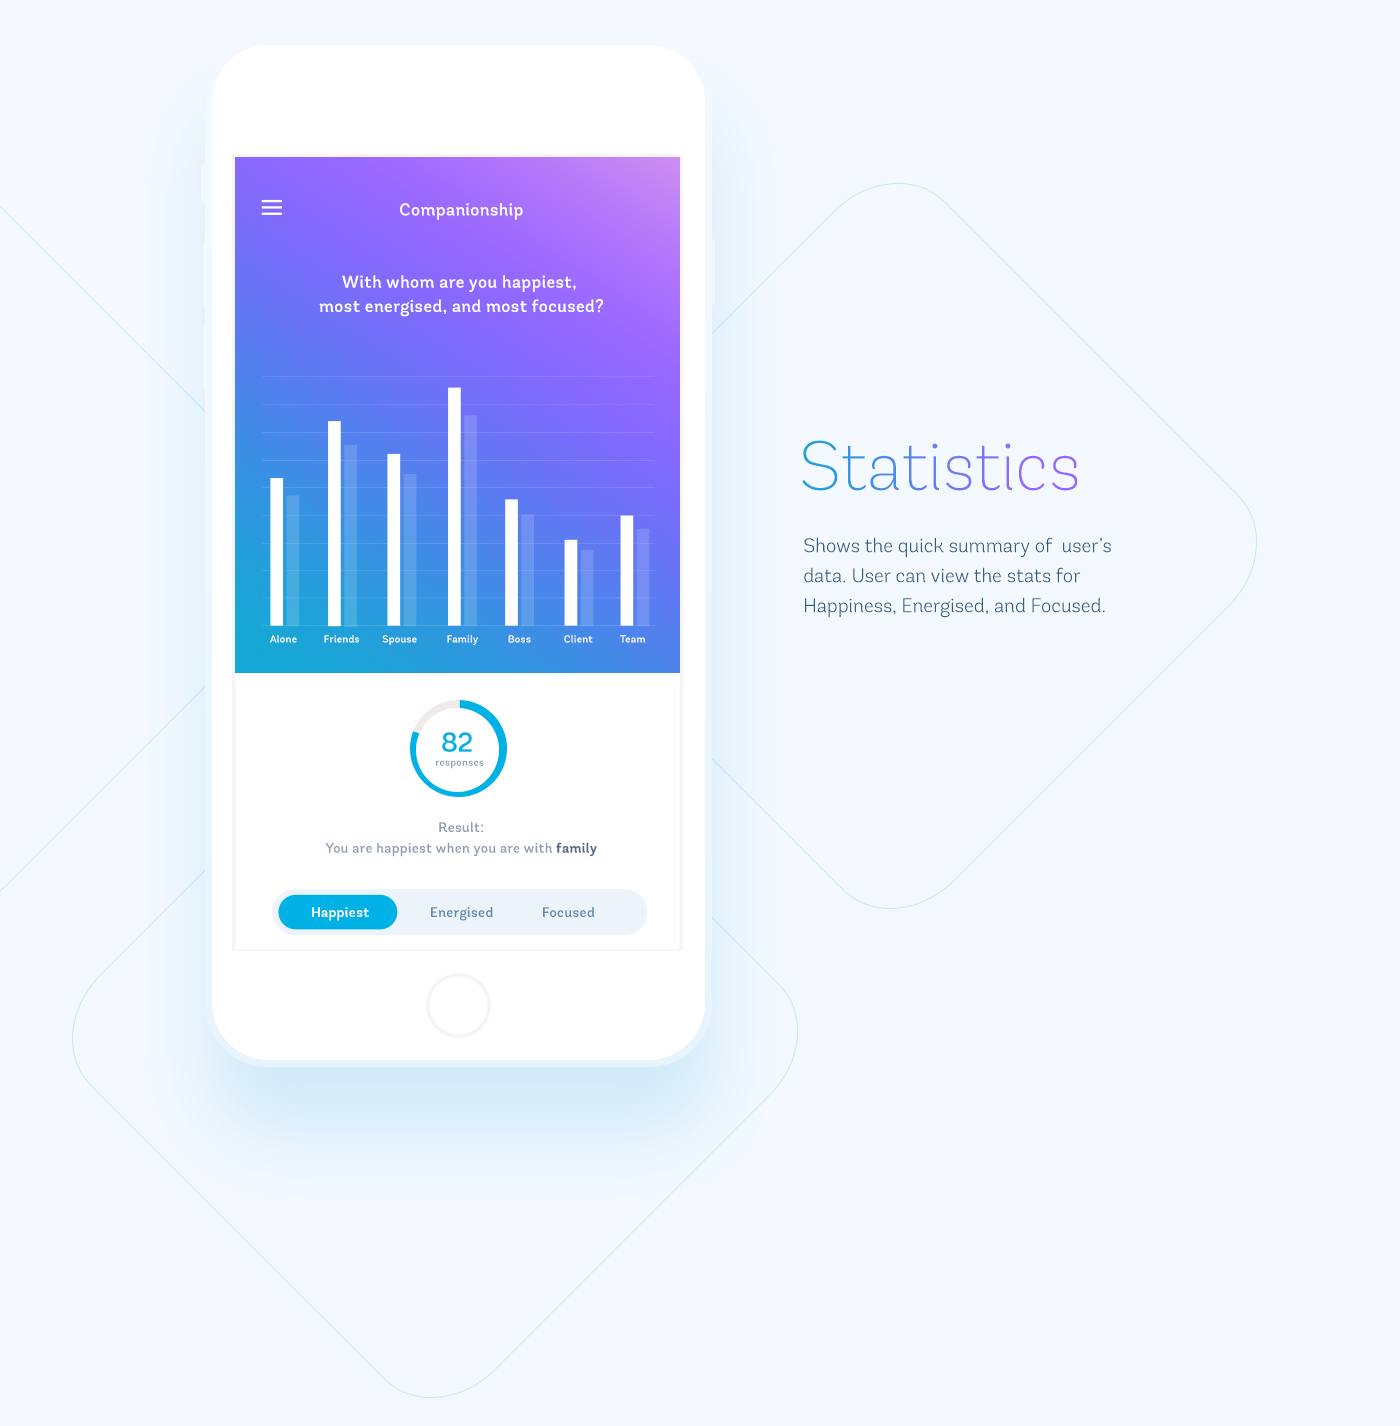 Me@ is a novel happiness and wellbeing measurement tool for use in organisations so employees can anonymously track their wellbeing while organisations can get a better understanding of their culture and how that is influencing employee wellbeing. Me@ f…